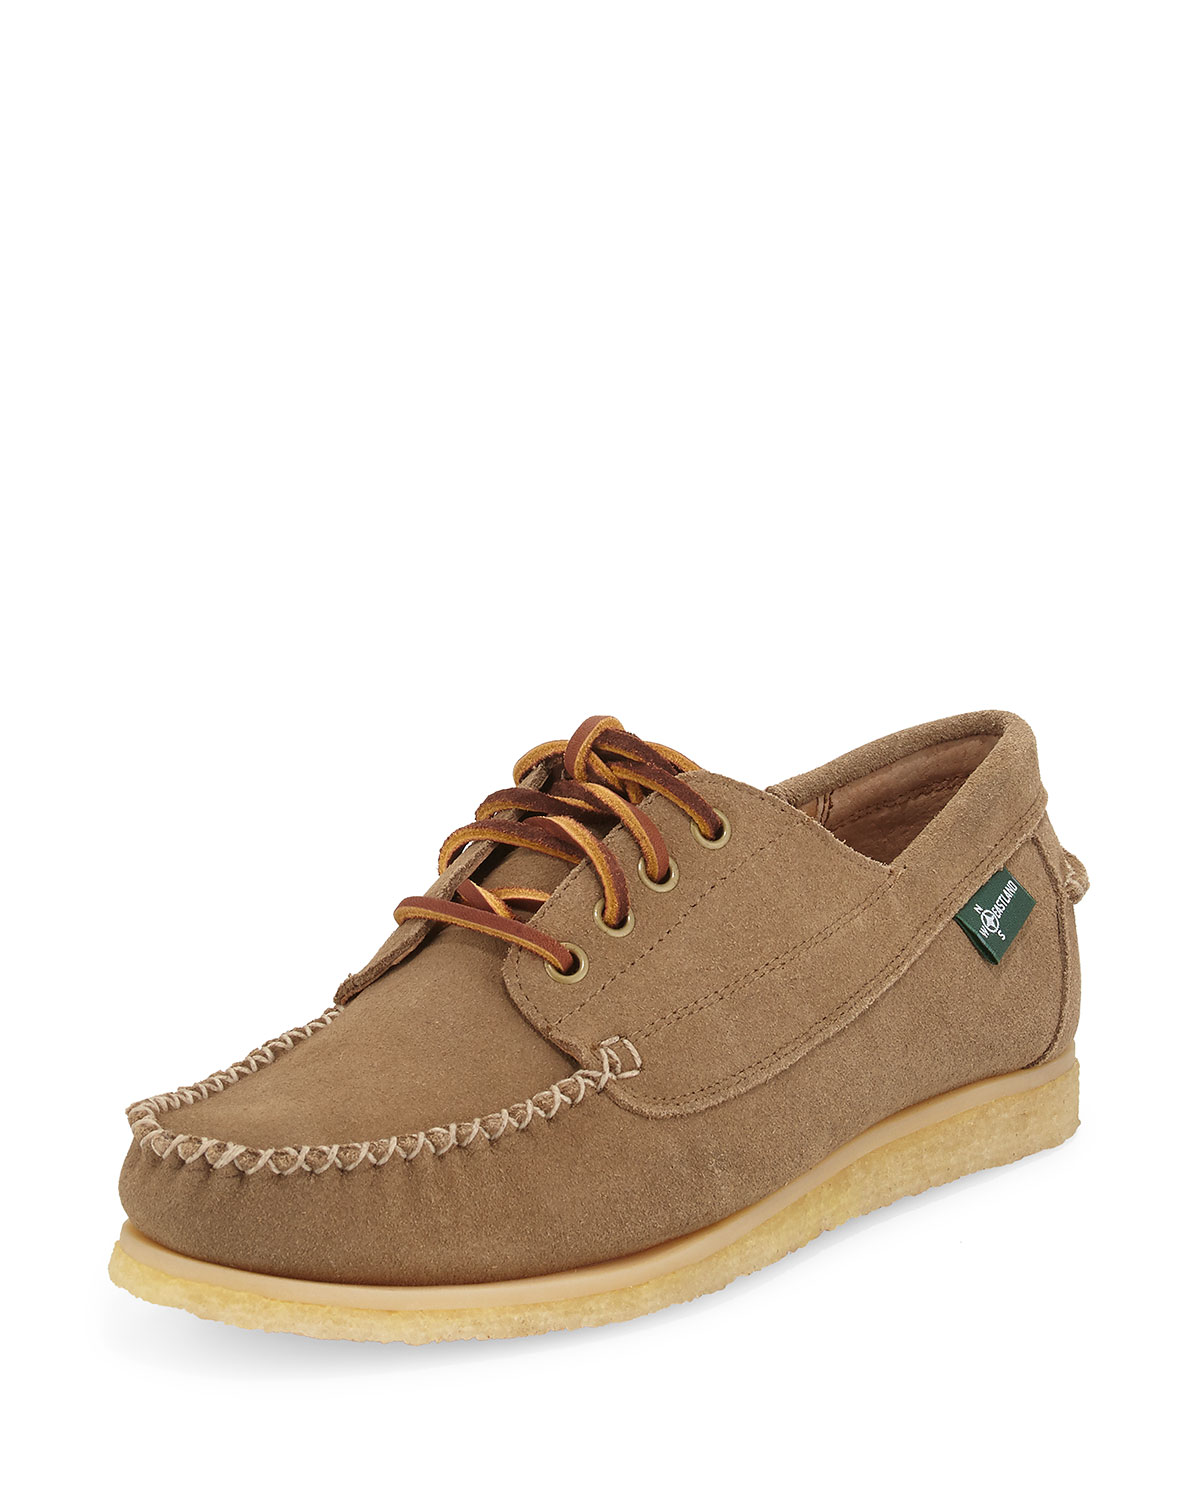 Fletcher 1955 Camp Moccasin, Dark Khaki